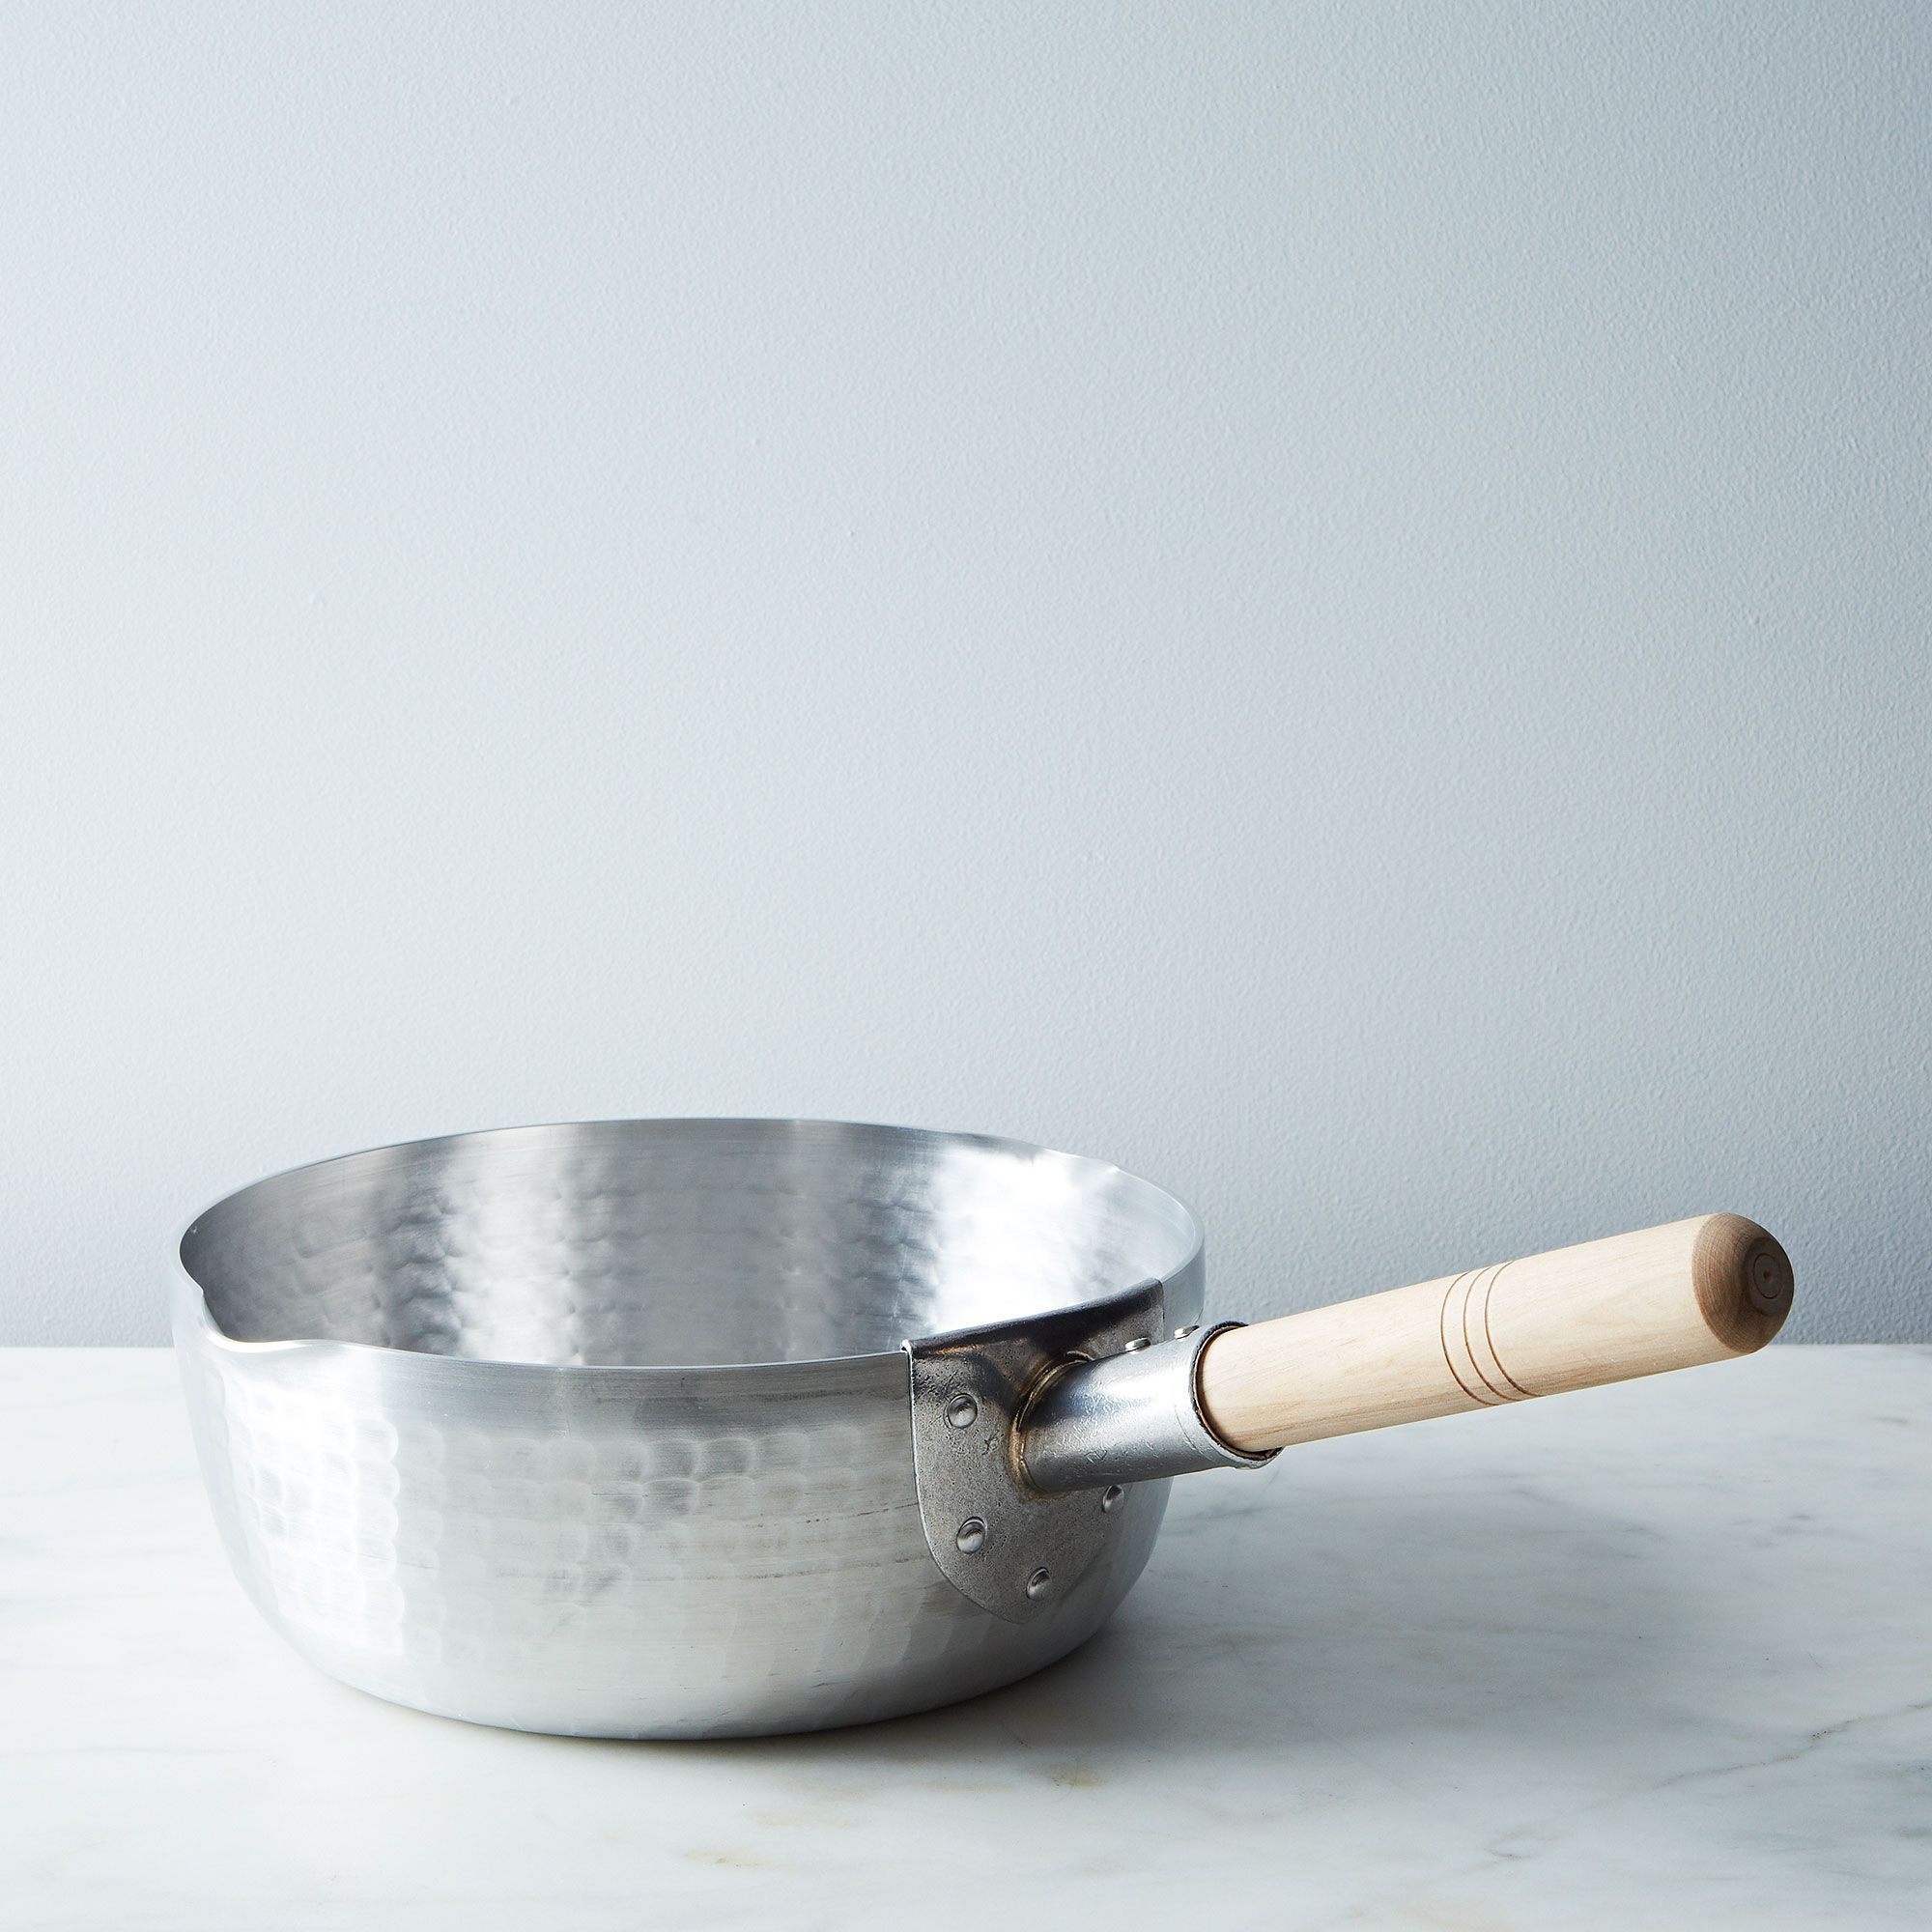 Aluminum Pot with Handle | Paris store, Kitchenware and Cookware